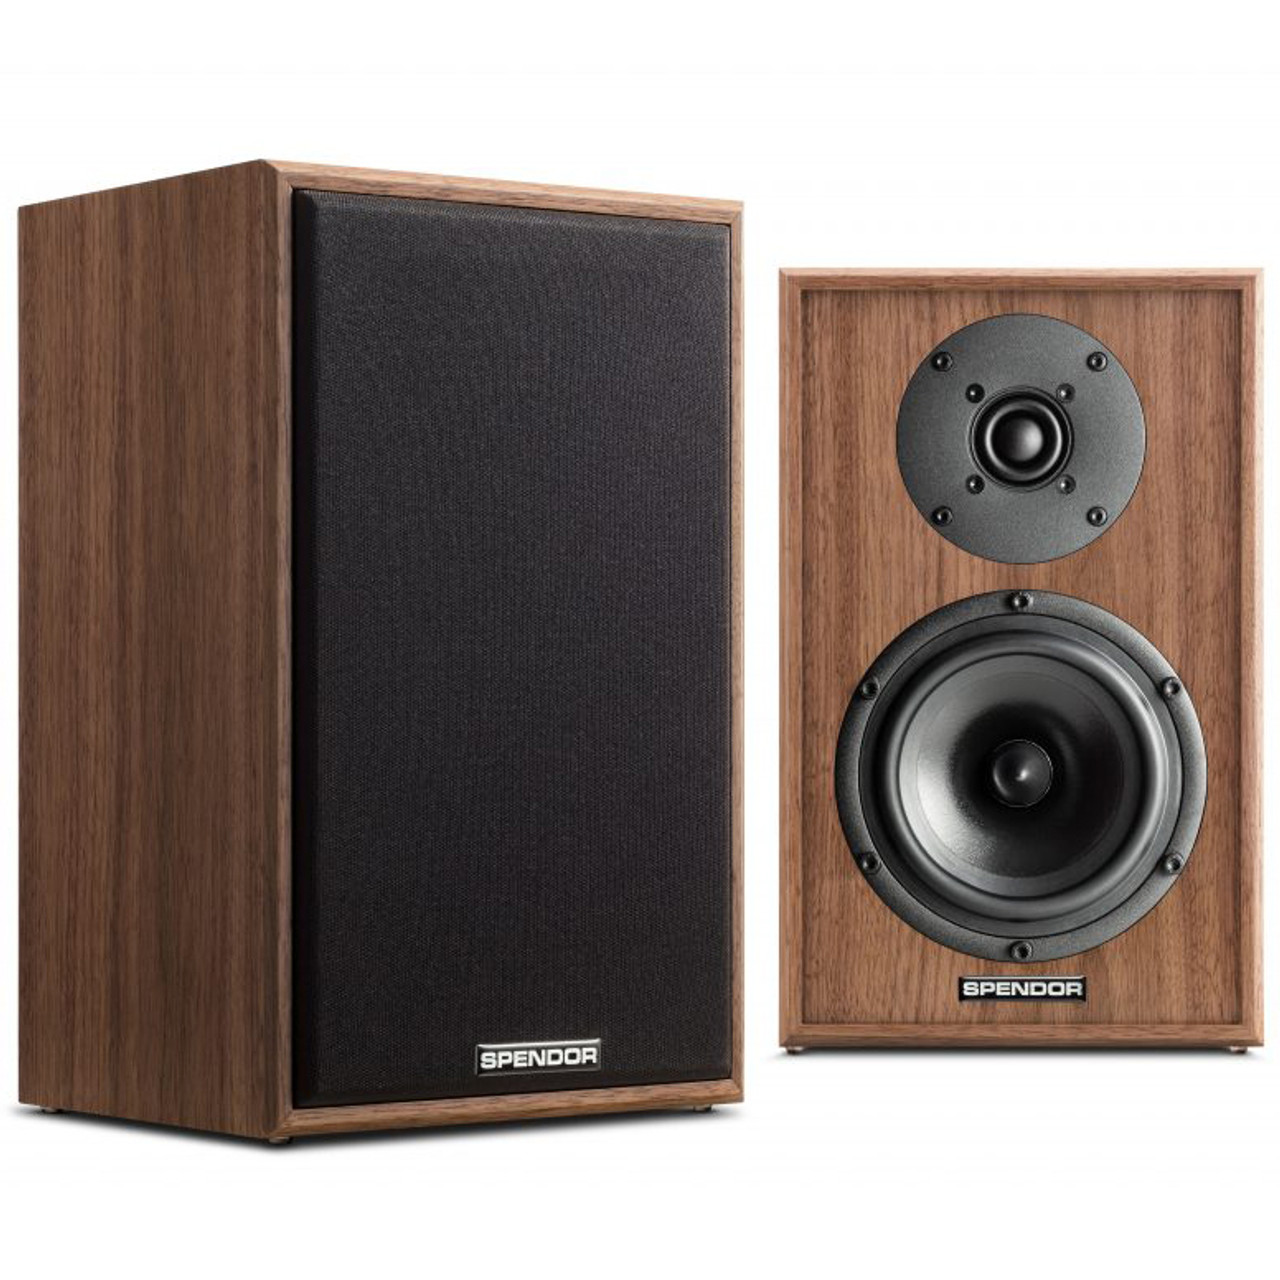 Spendor Classic 4/5 speakers